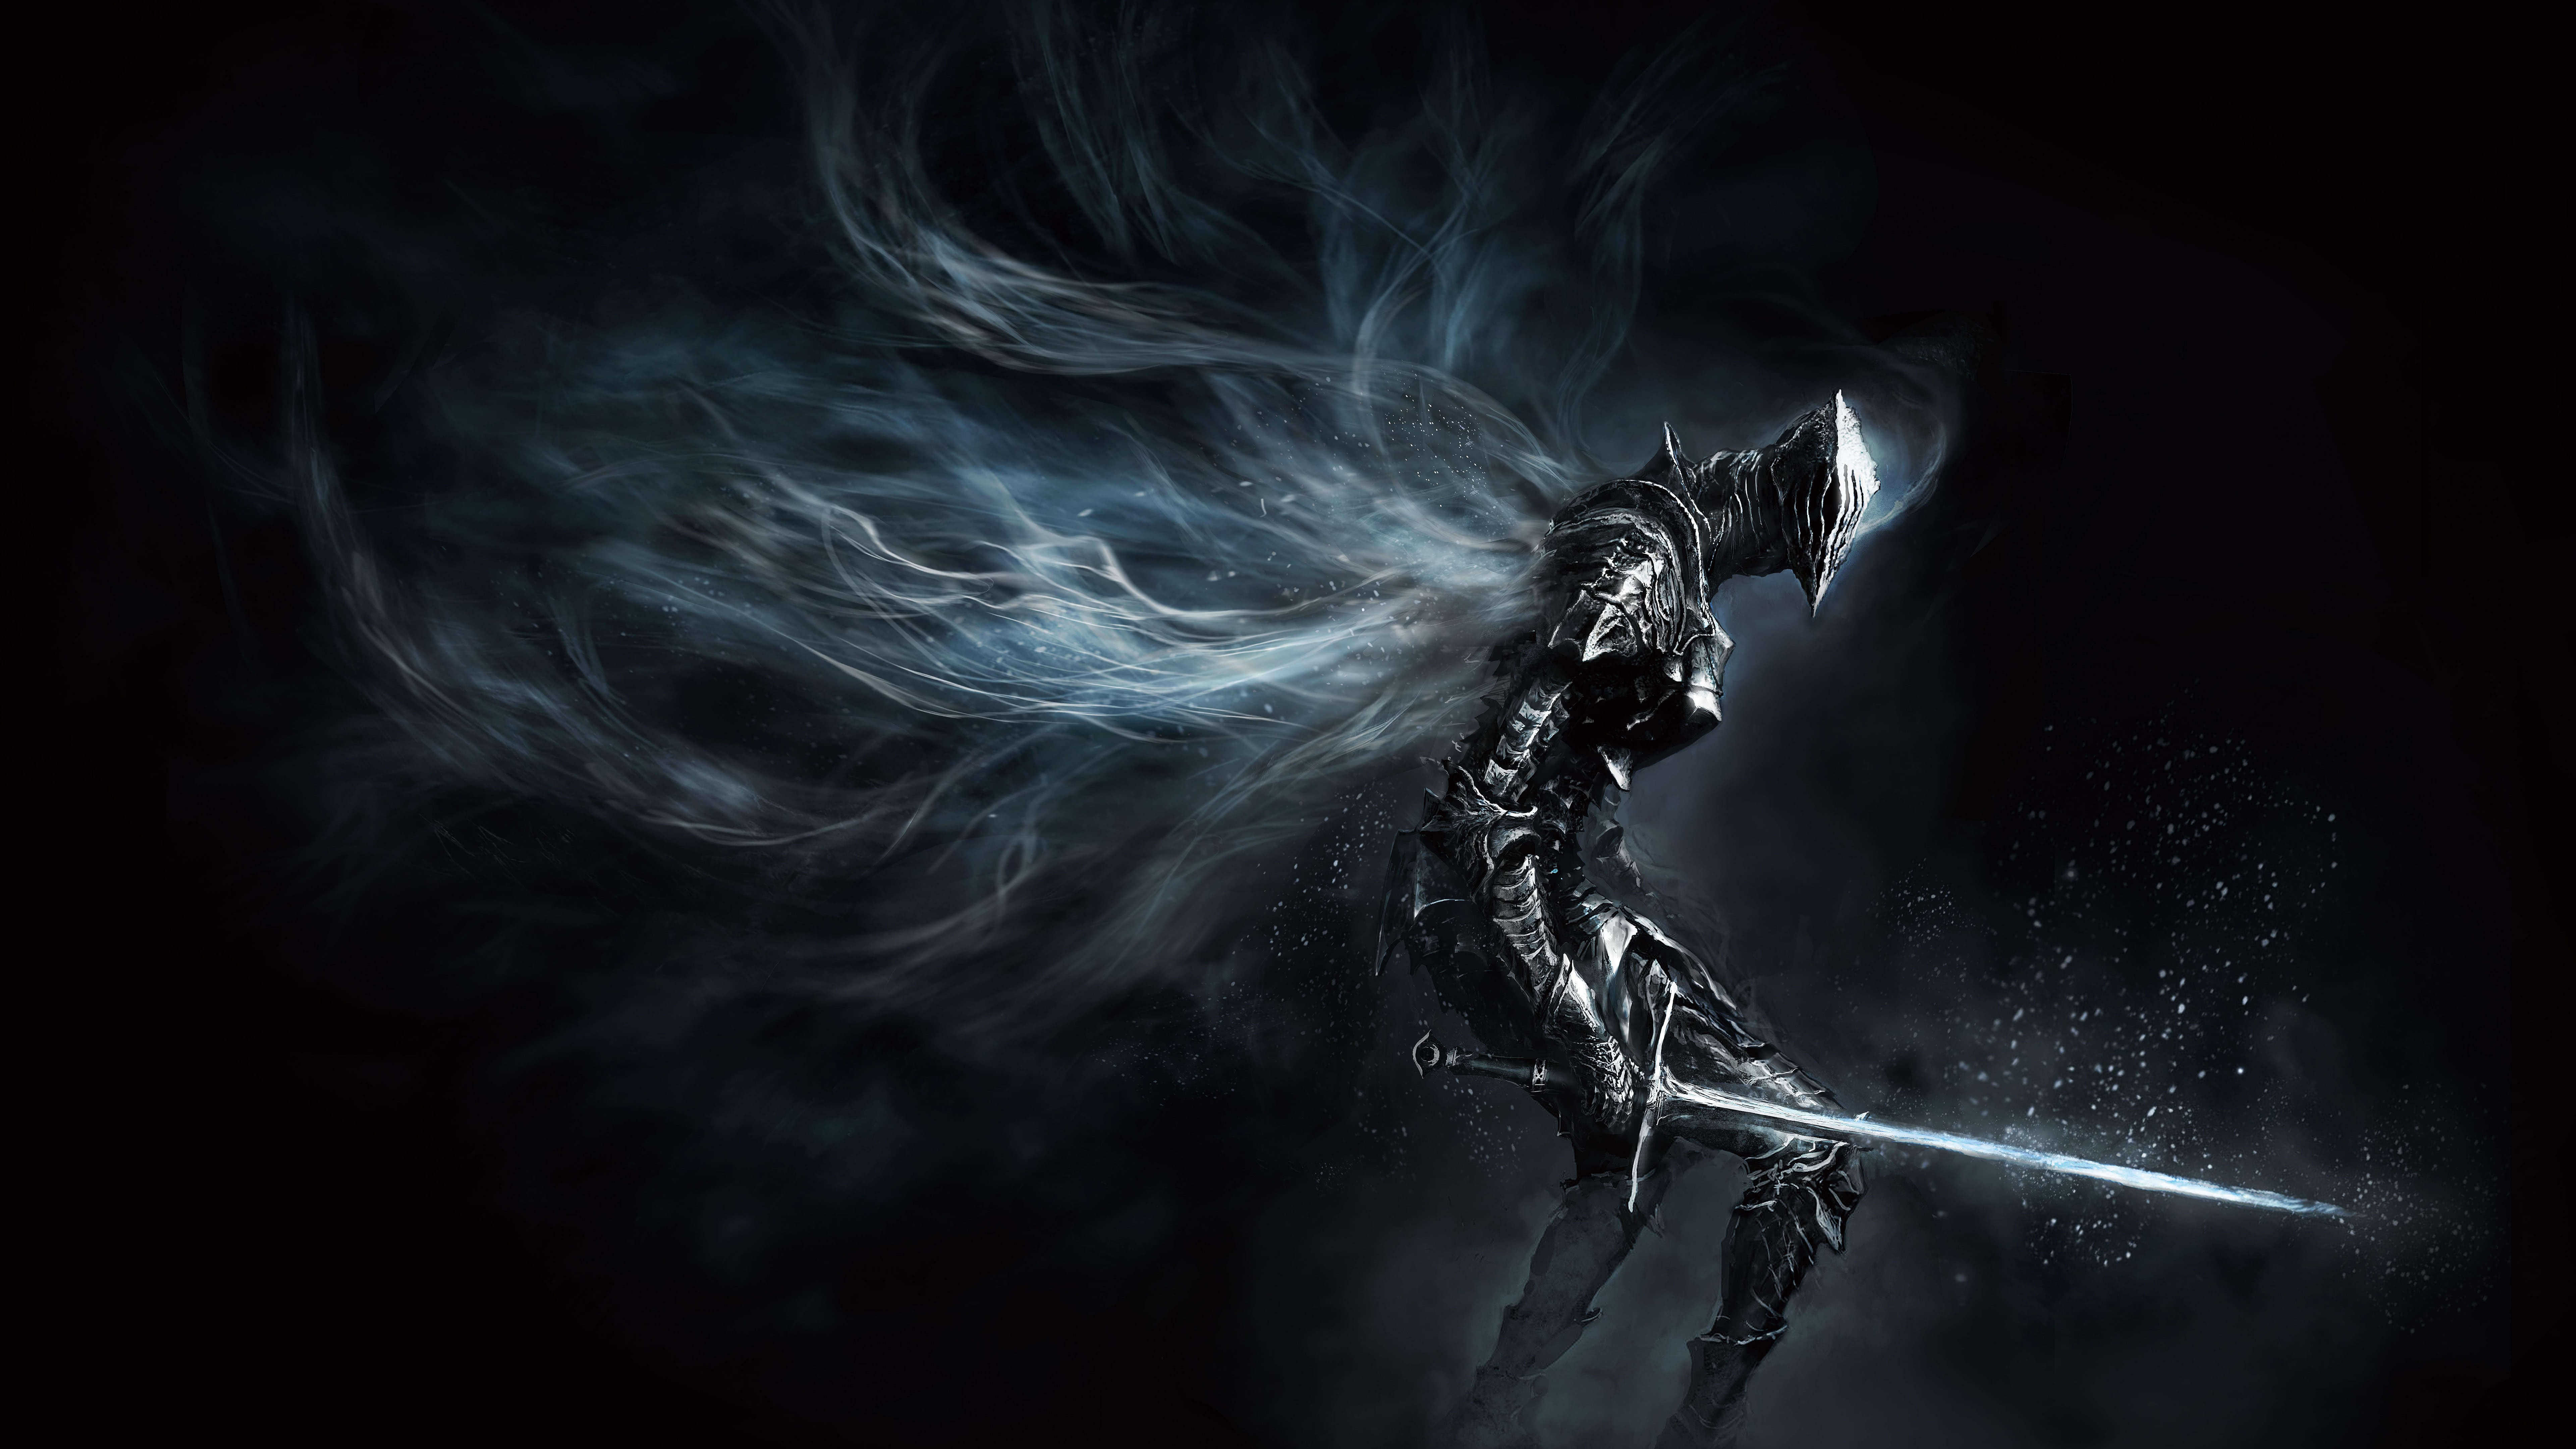 dark souls dark knight uhd 8k wallpaper